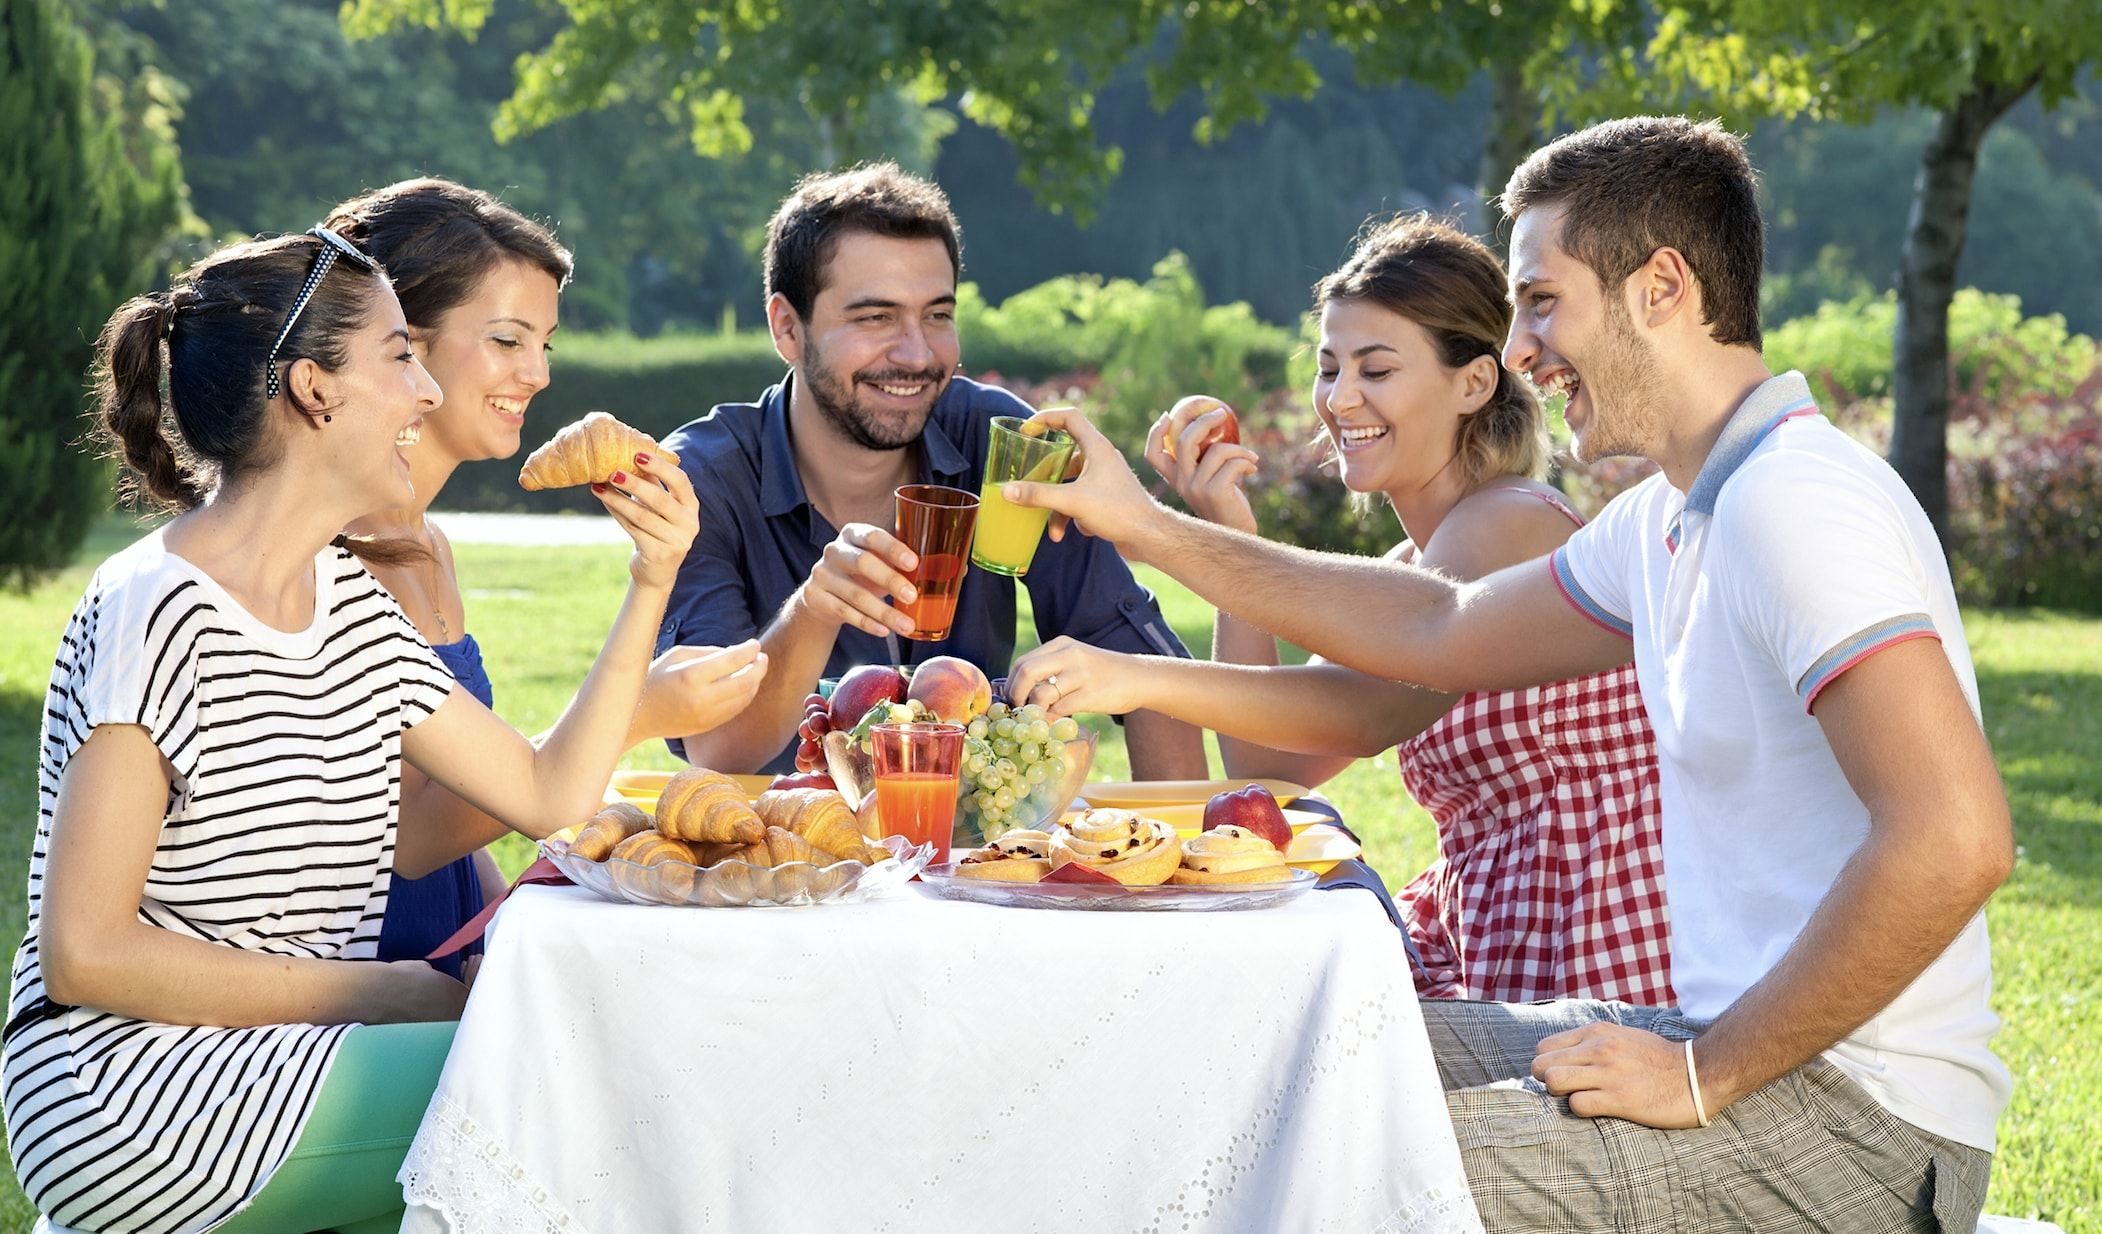 Happy people eat a vegetarian and vegan picnic